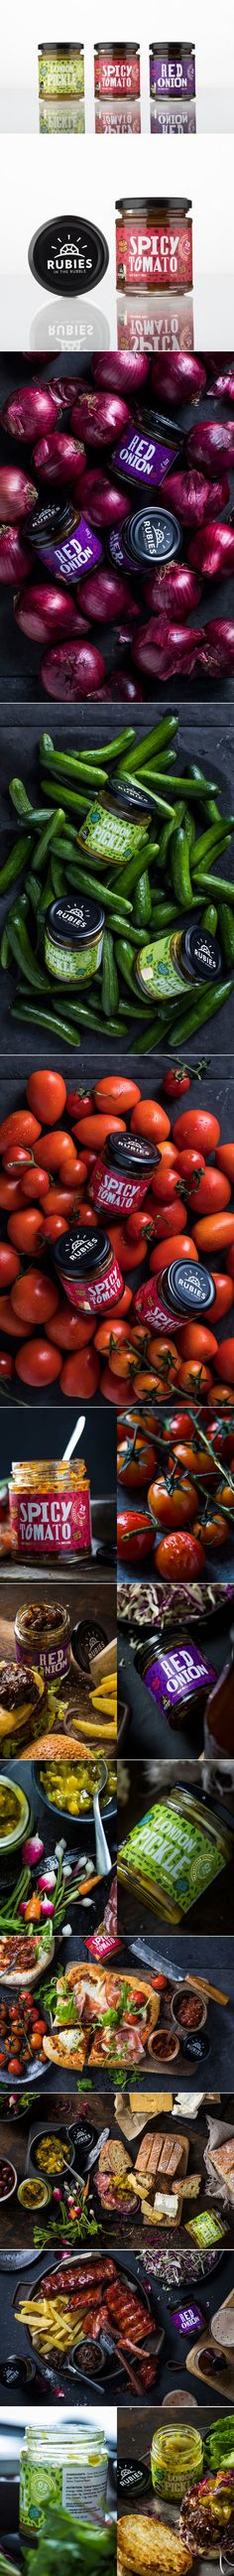 """""""Rejected"""" Fruits and Veggies Get a Second Chance With This Product — The Dieline 